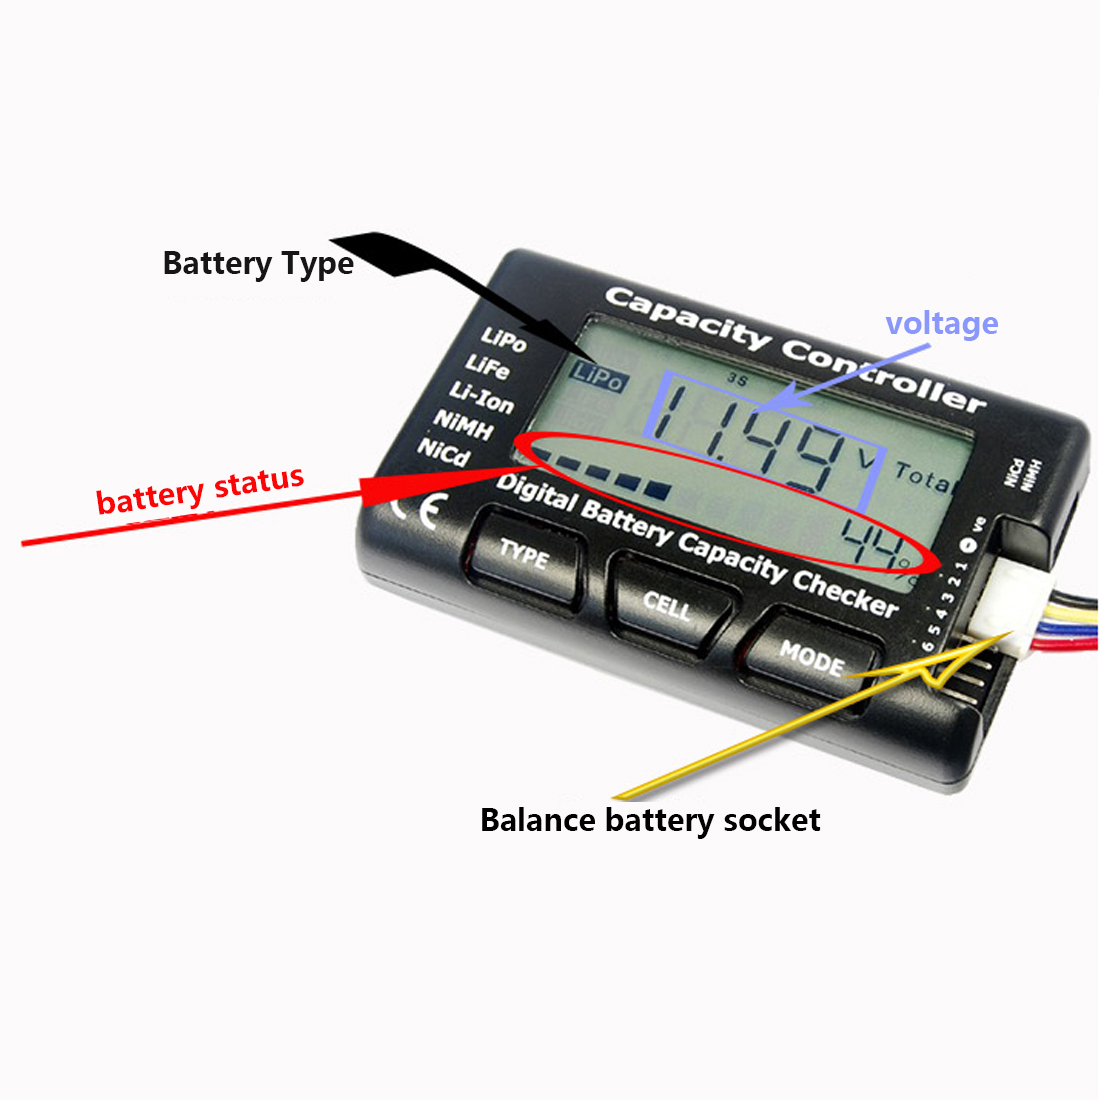 Cell Battery Capacity Checker RC CellMeter-7 Digital For LiPo LiFe Li-ion Nicd NiMH Battery Voltage Tester Checking 1 55v and 3v button cell battery checker battery tester green